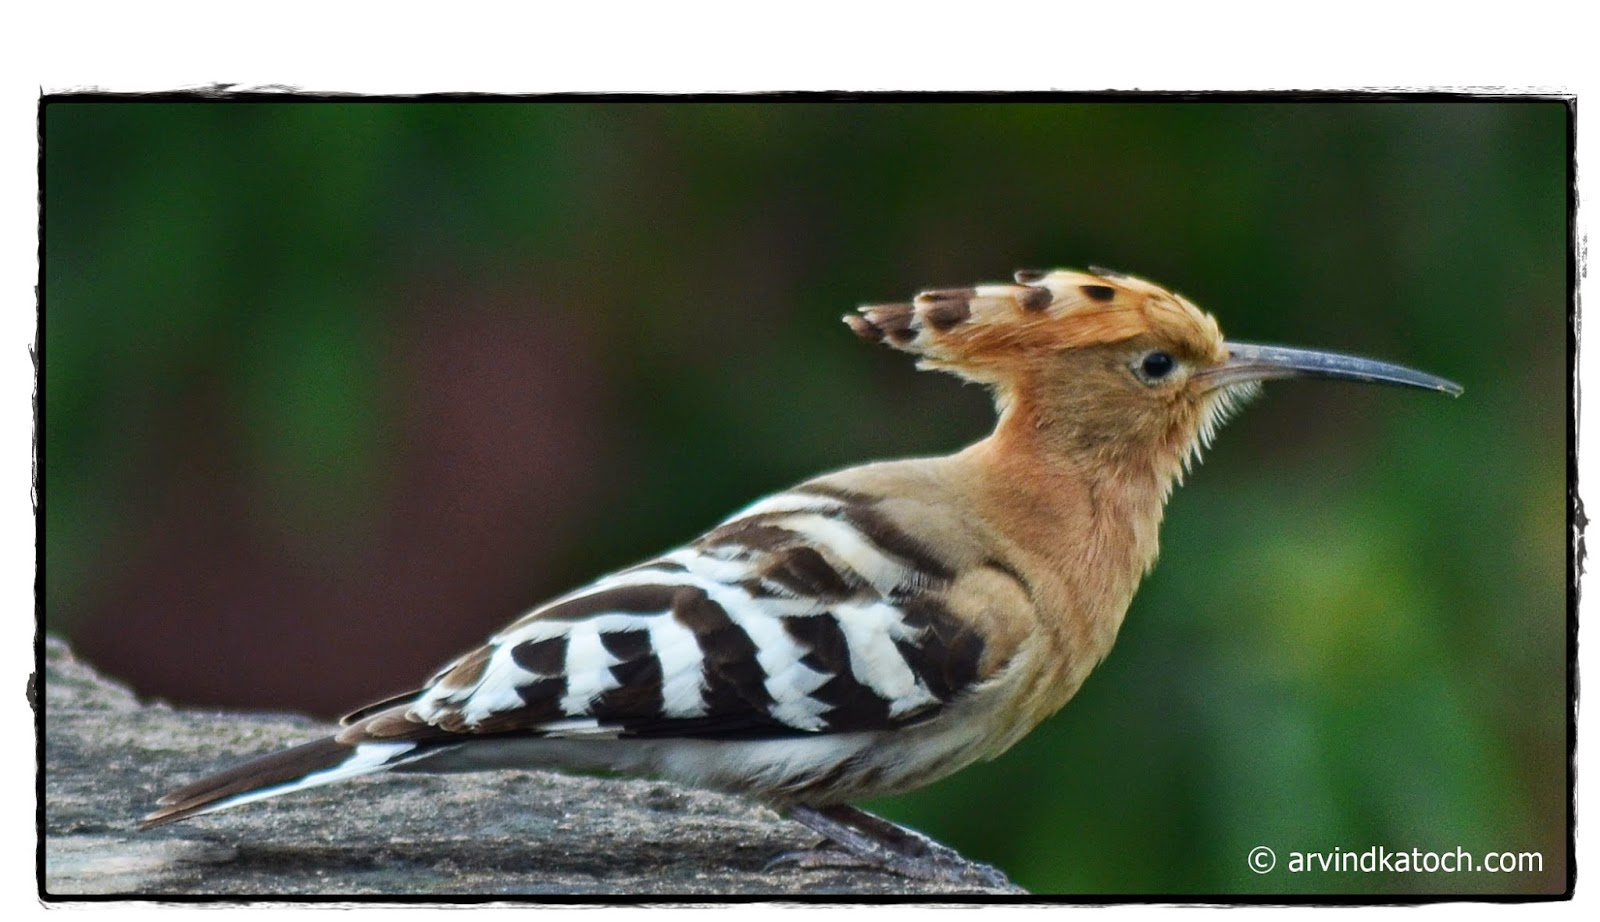 Crown, Hoopoe, Bird